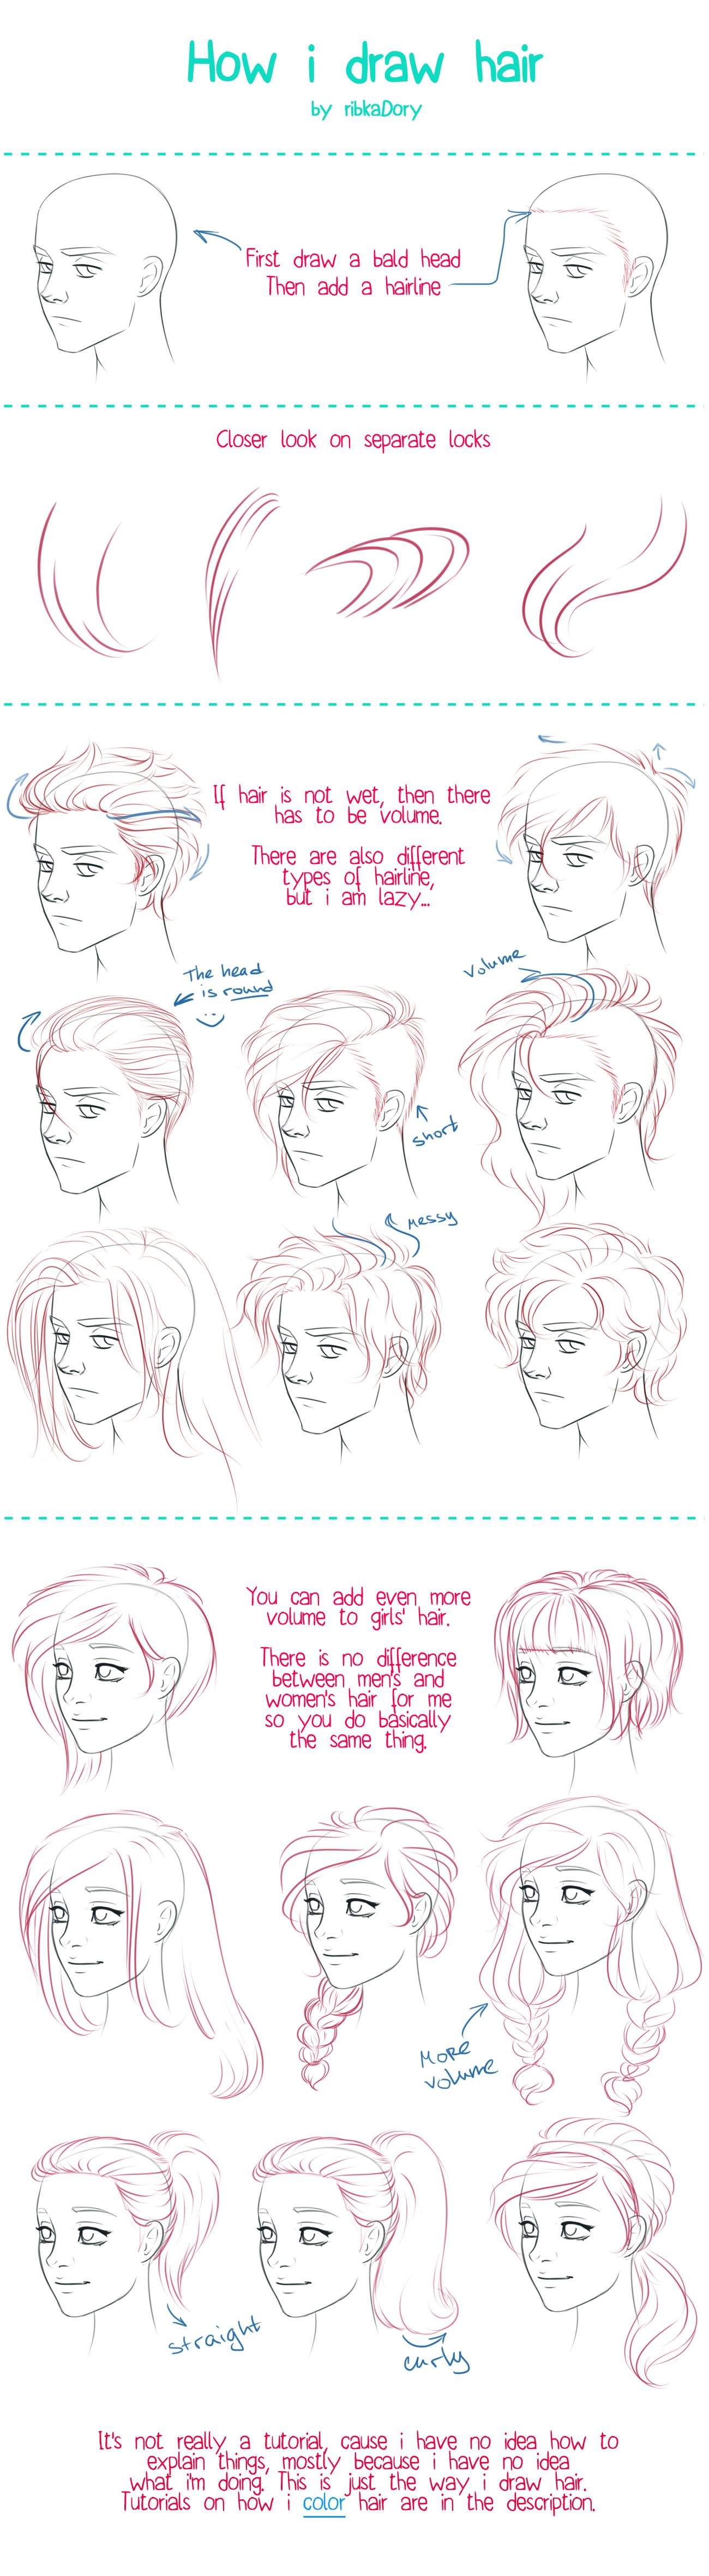 How to Draw Hair tutorial by =ribkaDory on deviantART by drawing